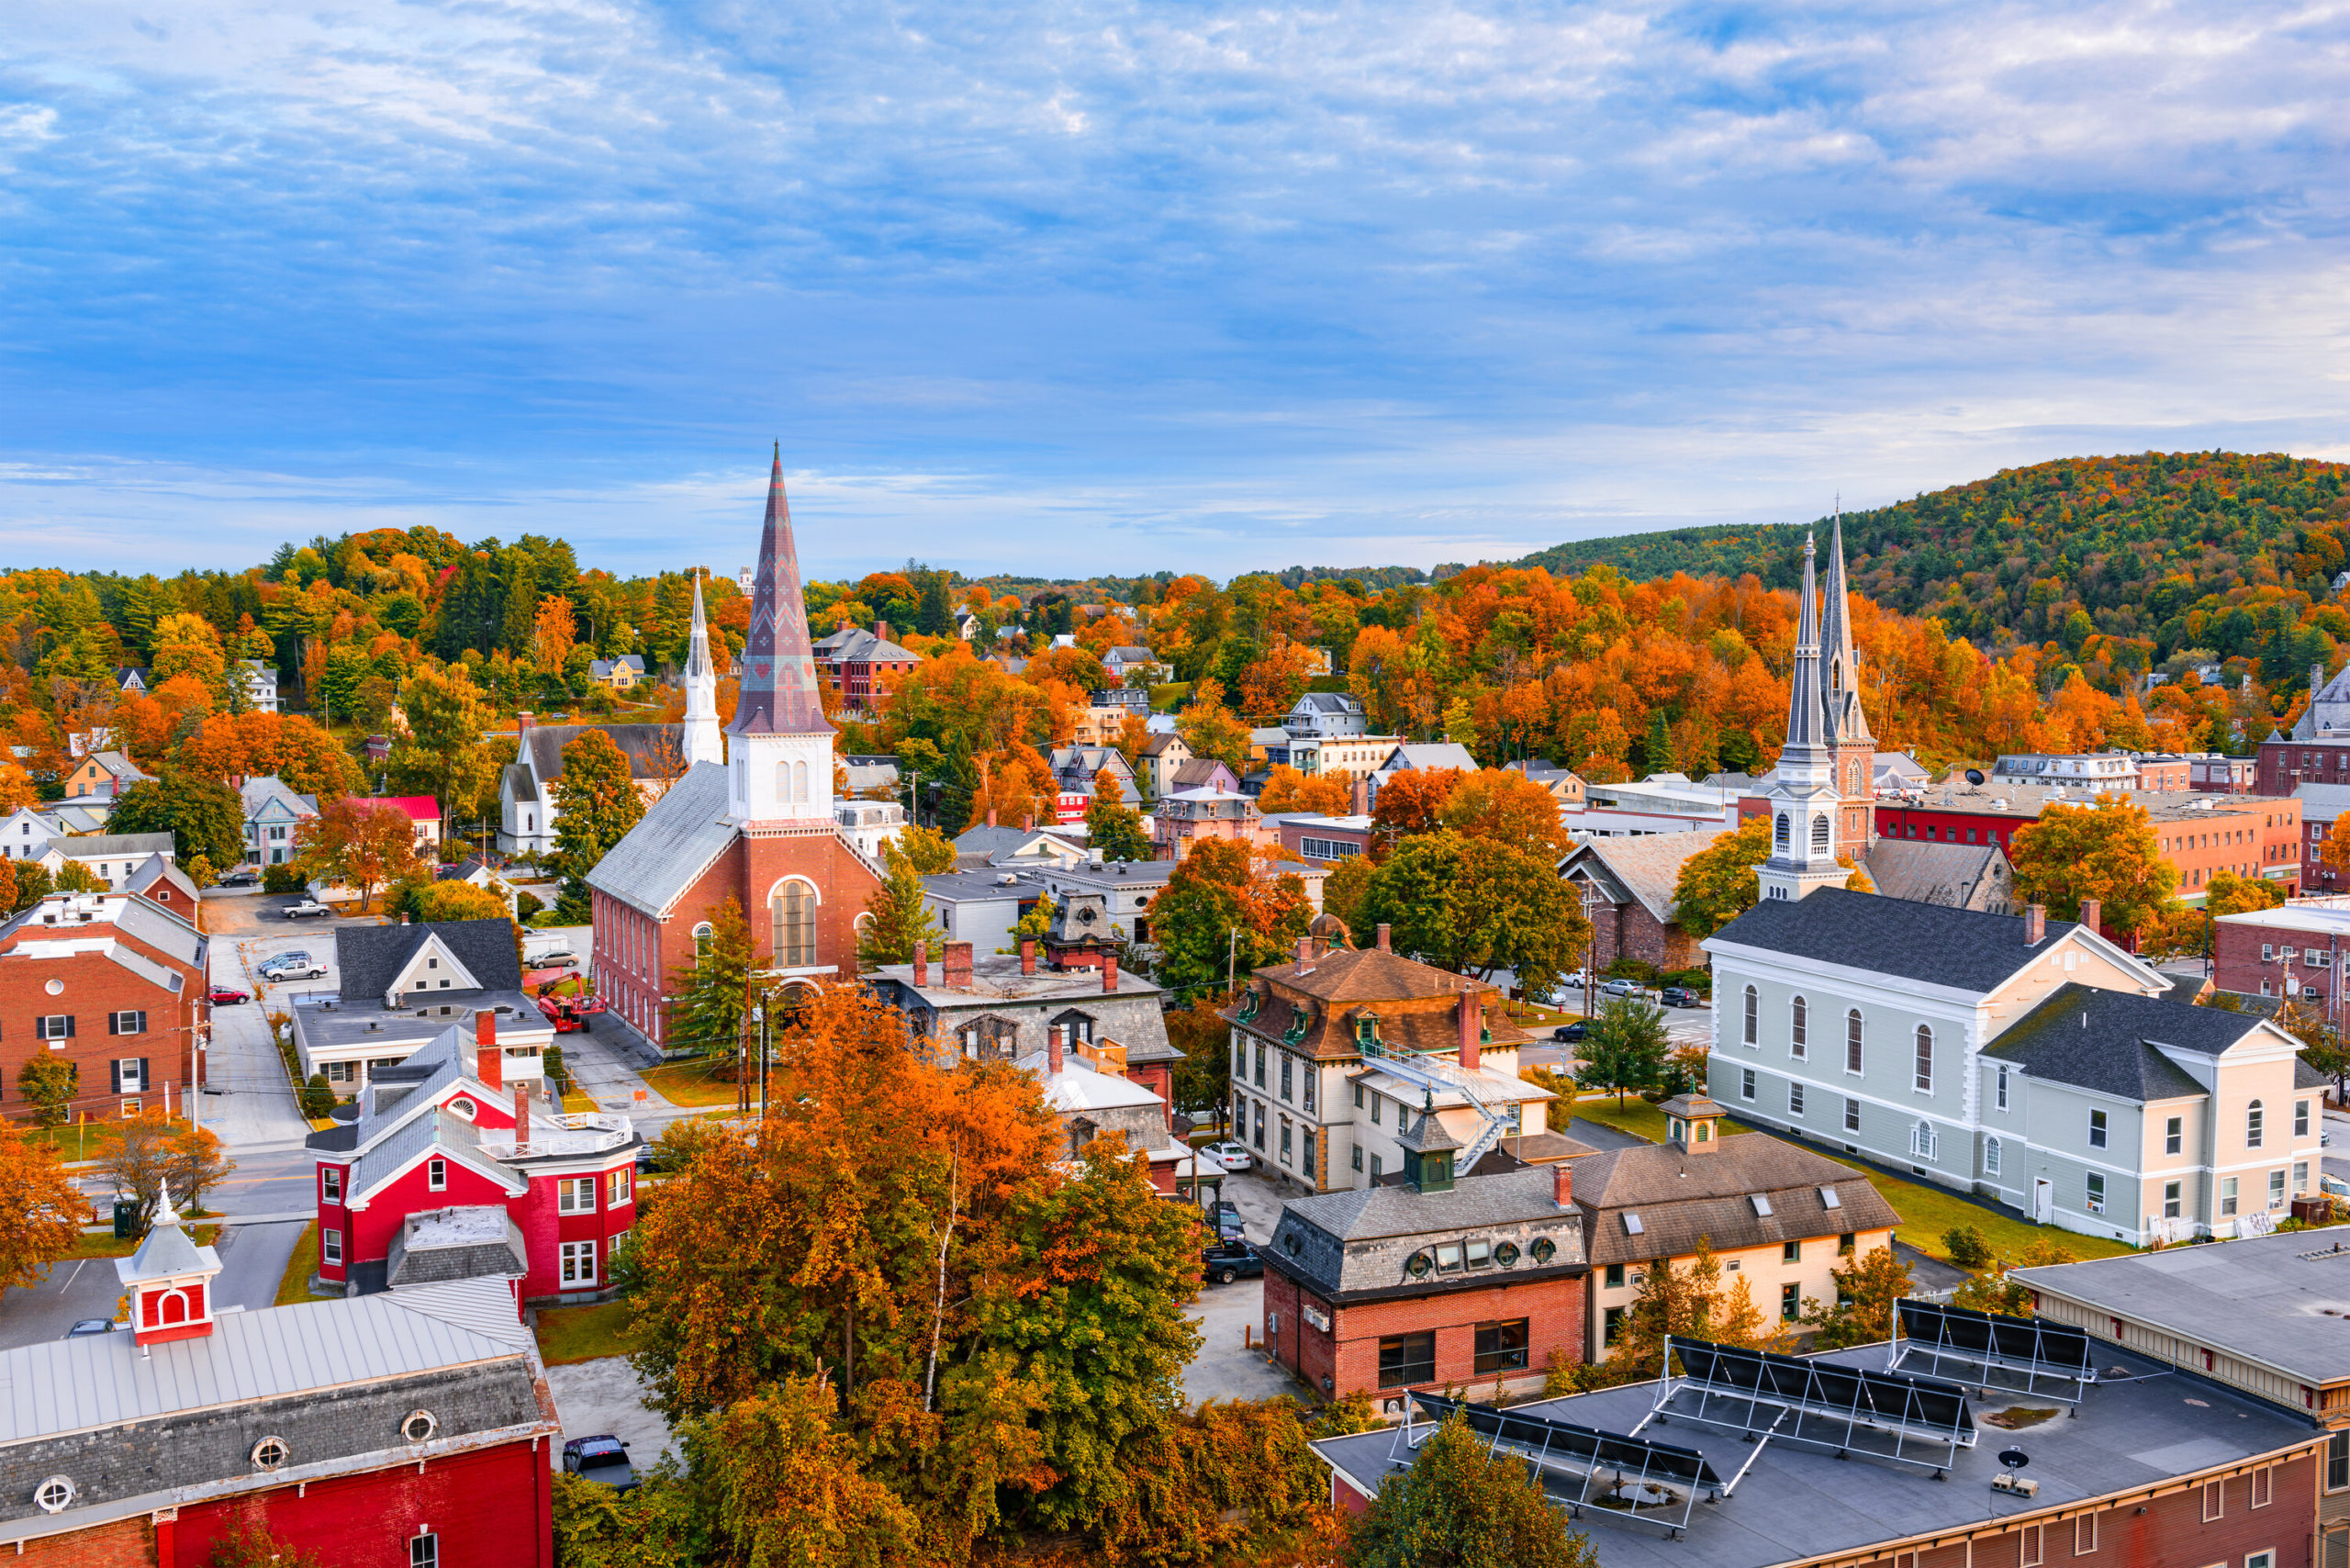 Small town cityscape with colonial style buildings and churches with tall spires, surrounded by fall colors and blue sky